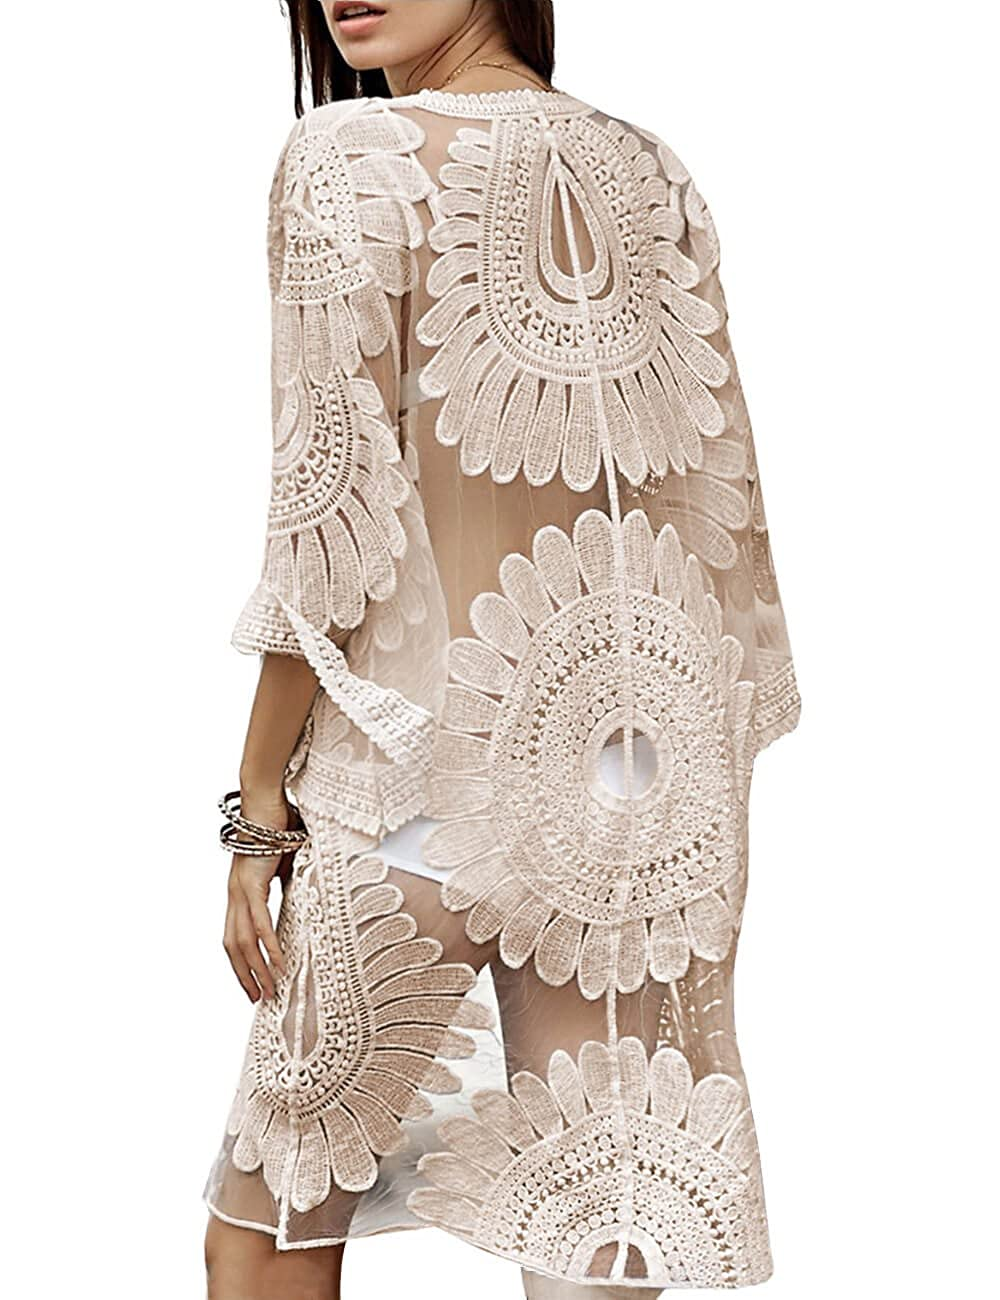 25951d25de shermie Women's Floral Crochet Lace Beach Swimsuit Cover Ups Long Vintage  Kimono Cardigan (Beige) at Amazon Women's Clothing store: